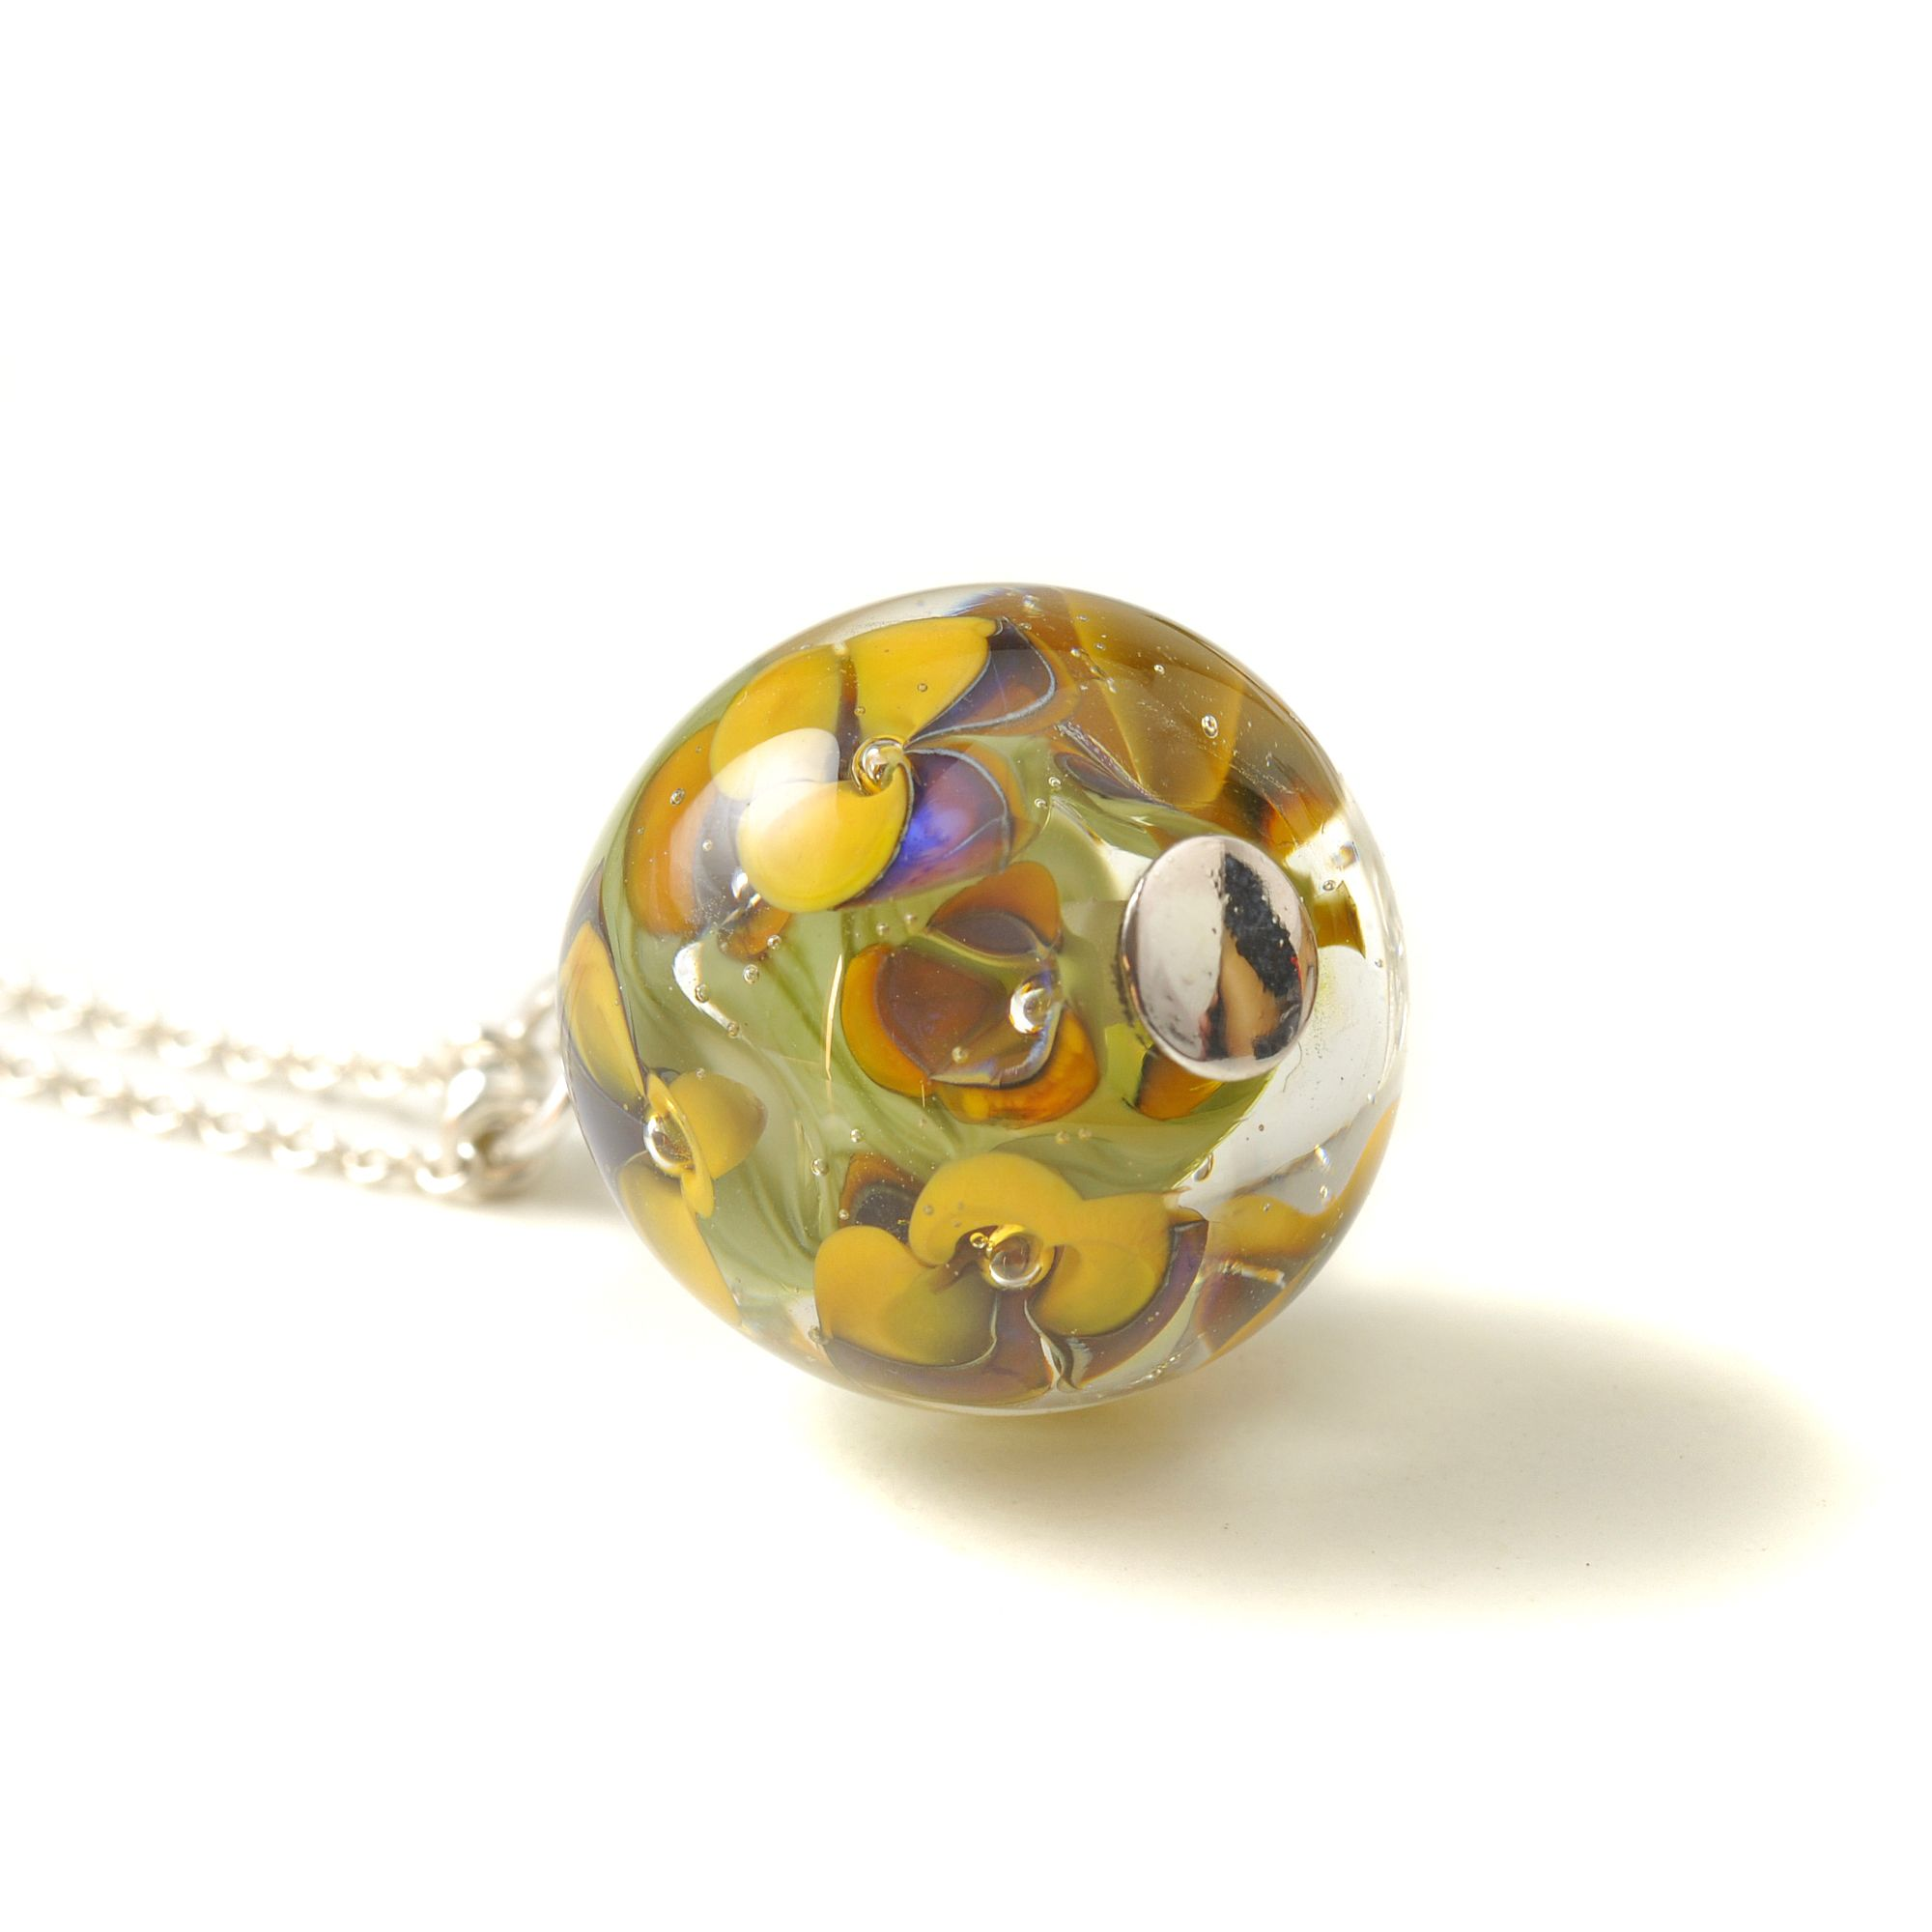 Floral Collection Handmade Lampwork Glass Jewellery